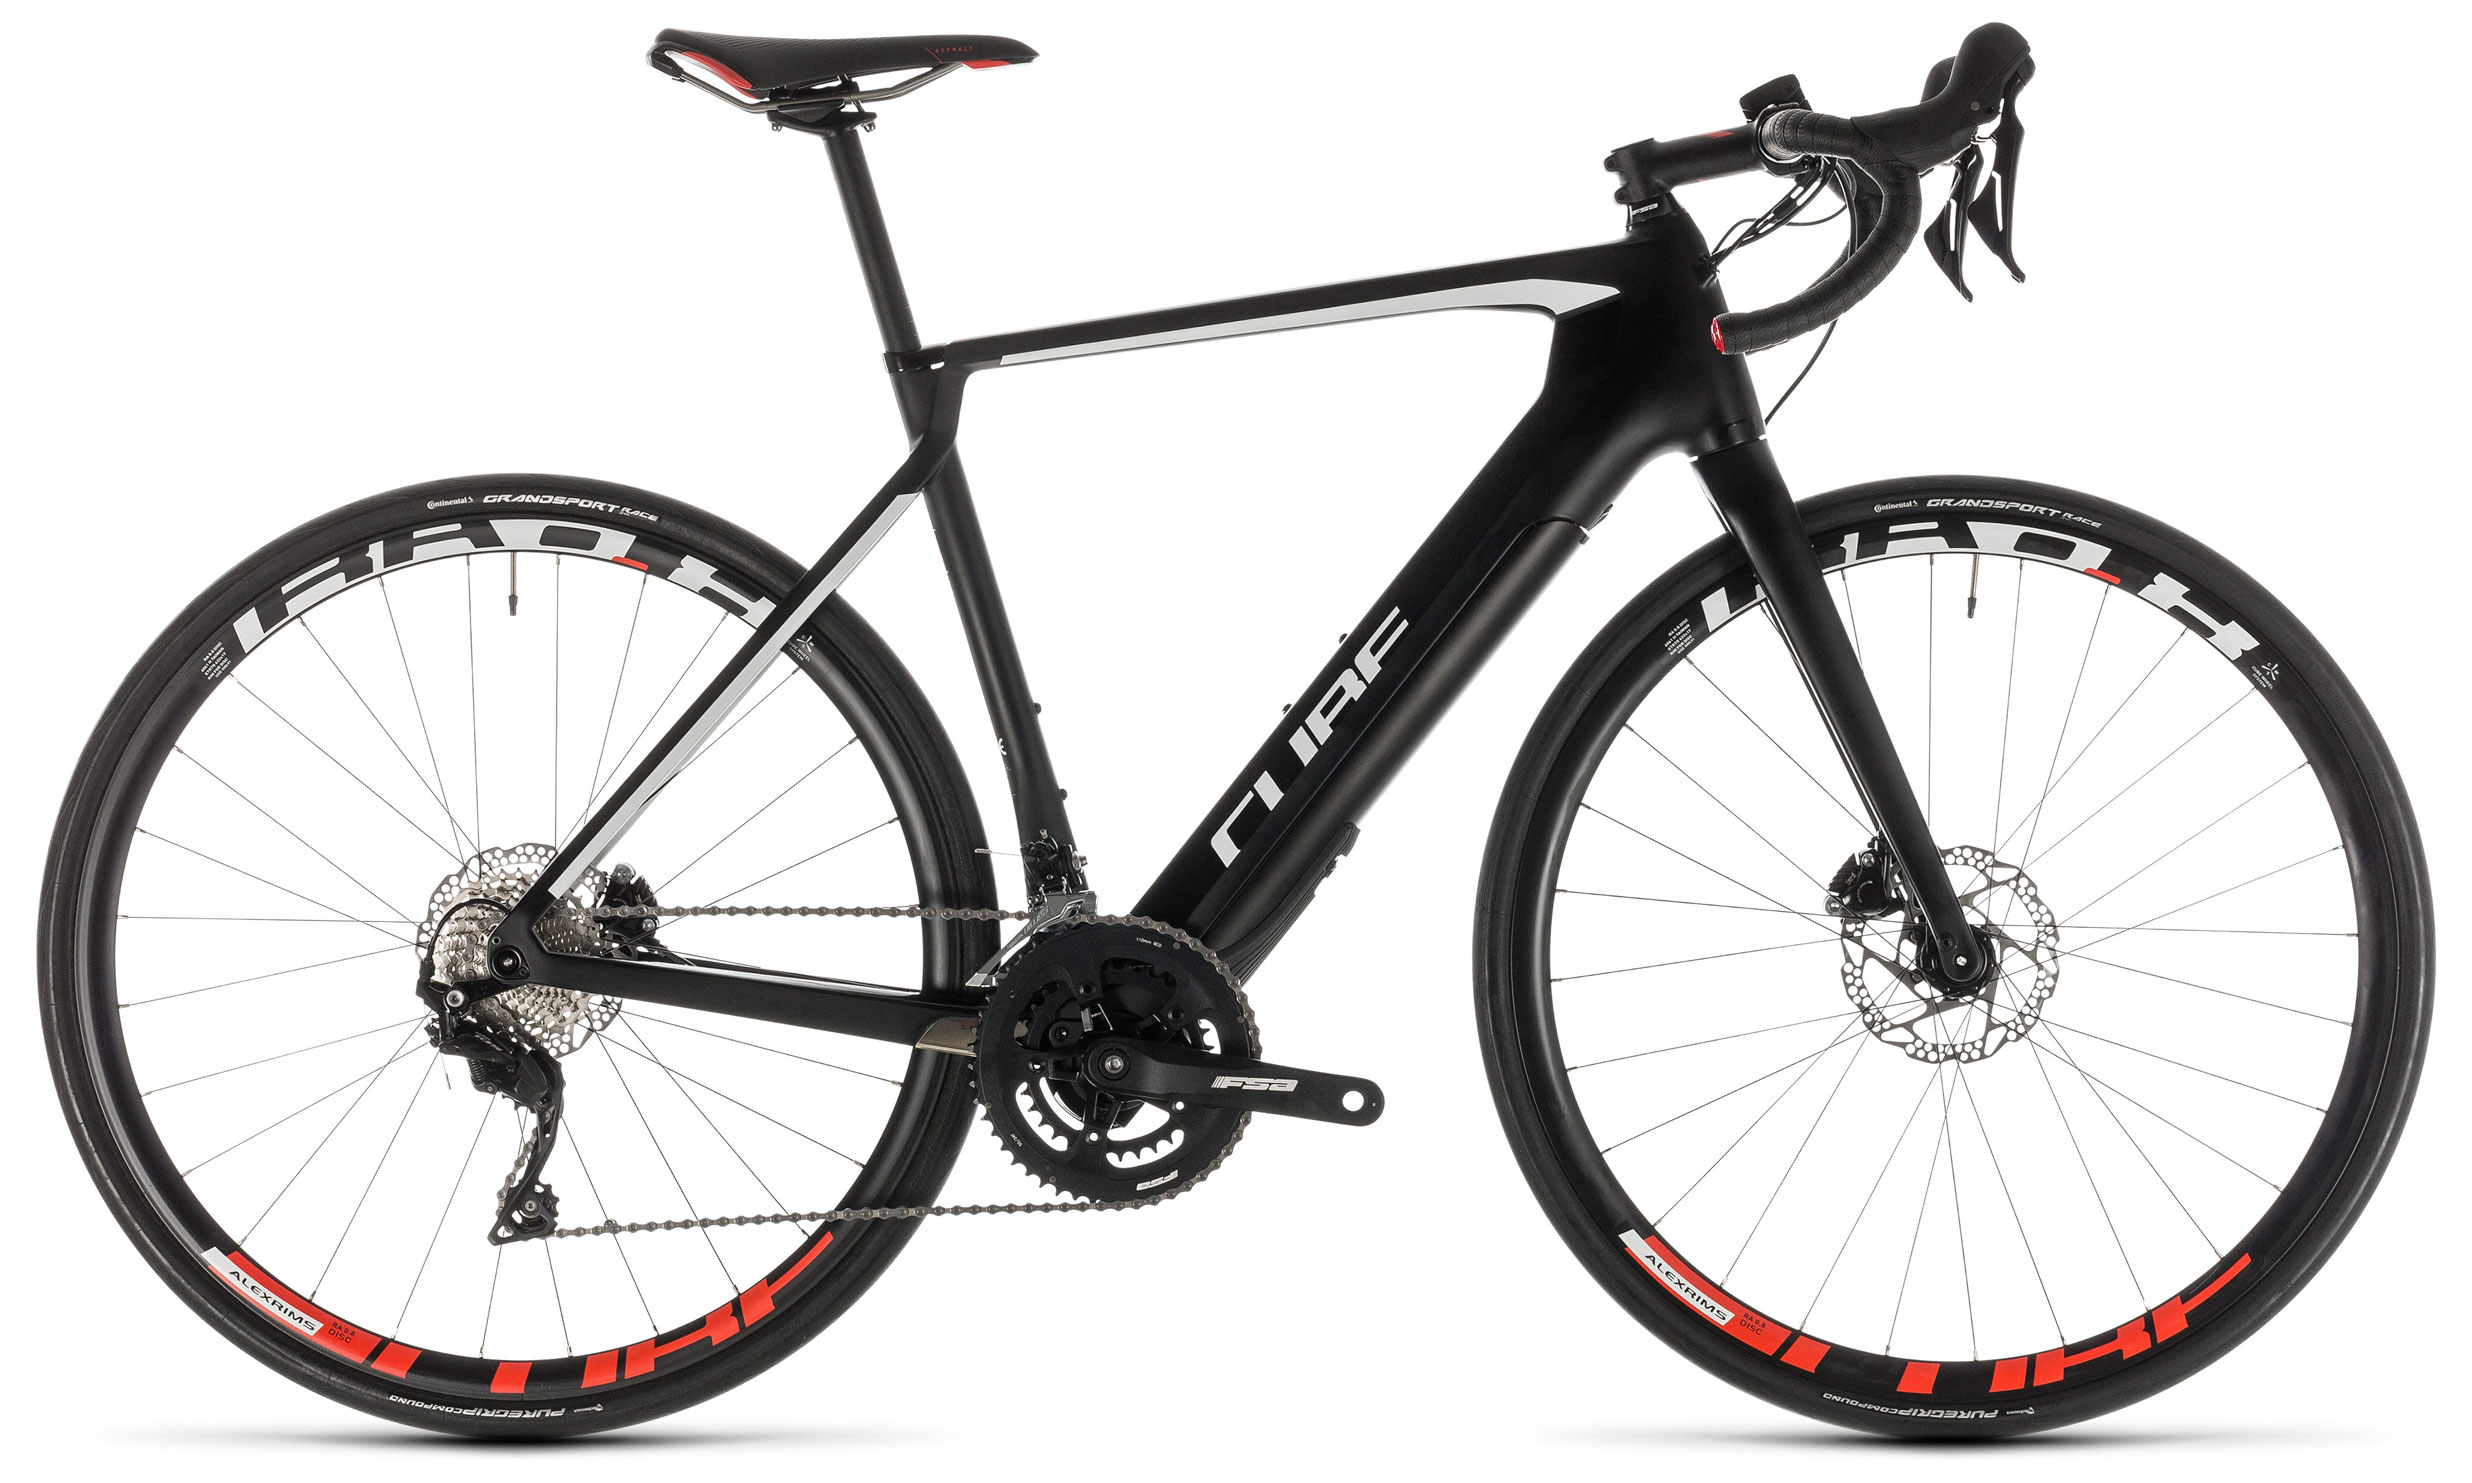 Велосипед Cube Agree Hybrid C:62 Race Disc 2019 велосипед cube agree c 62 slt disc 2016